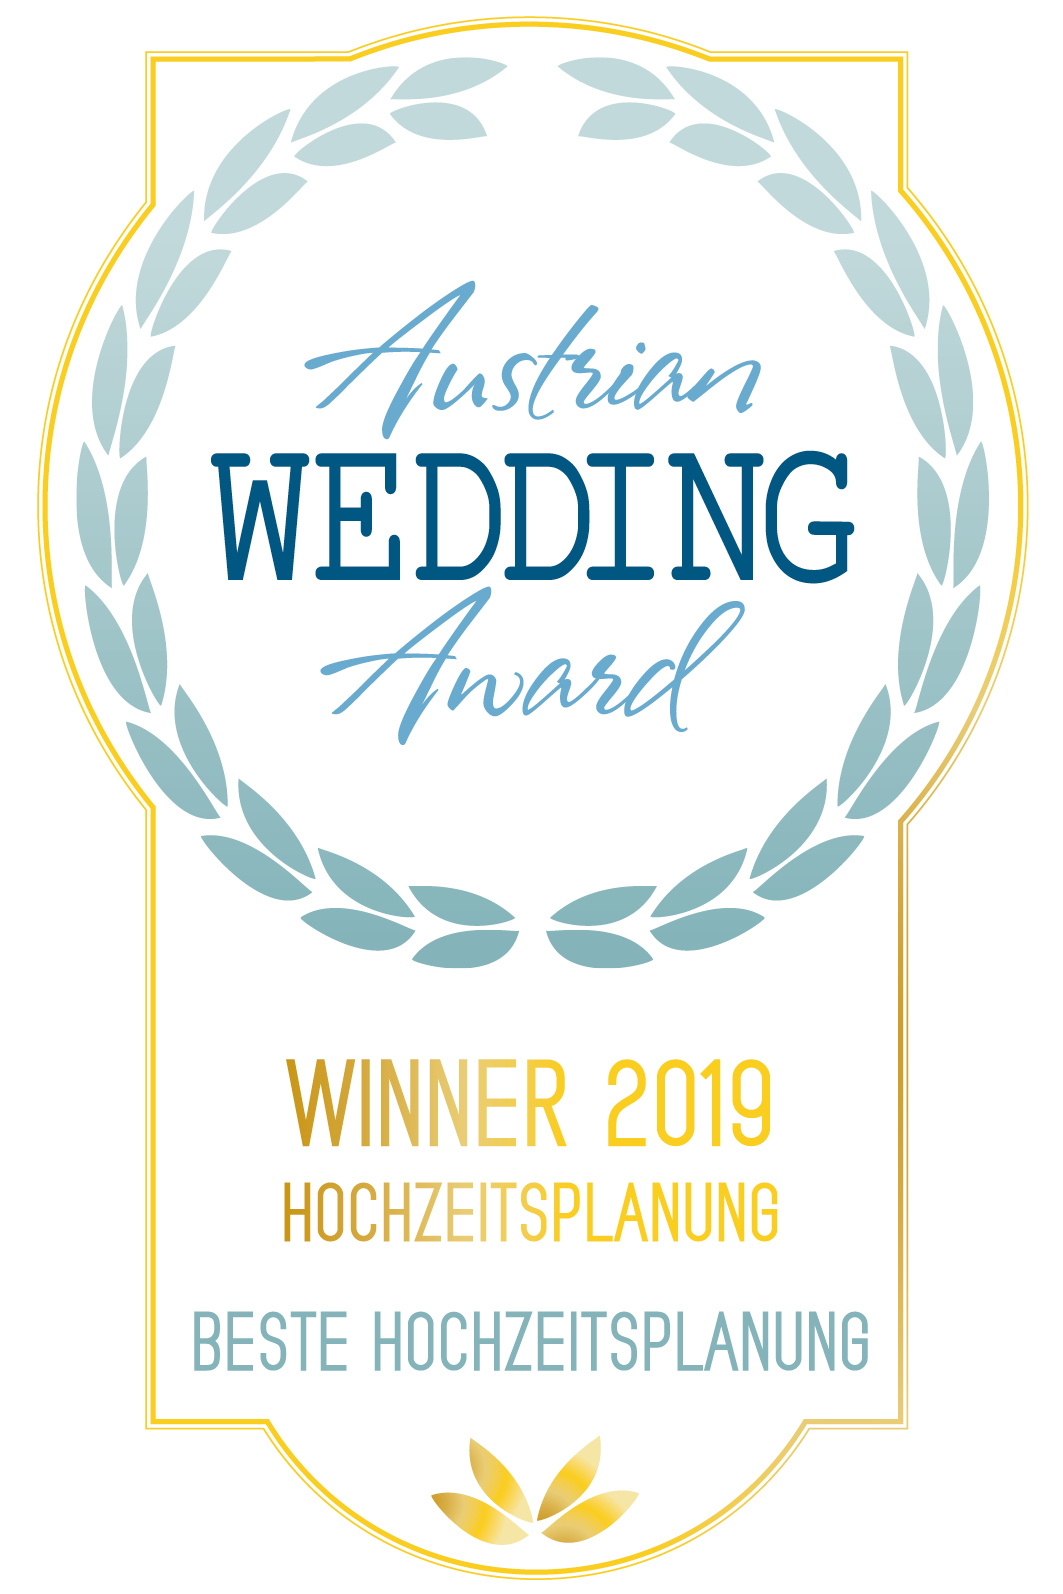 Austrian Wedding Award Badge Beste Hochzeitsplanung 2019